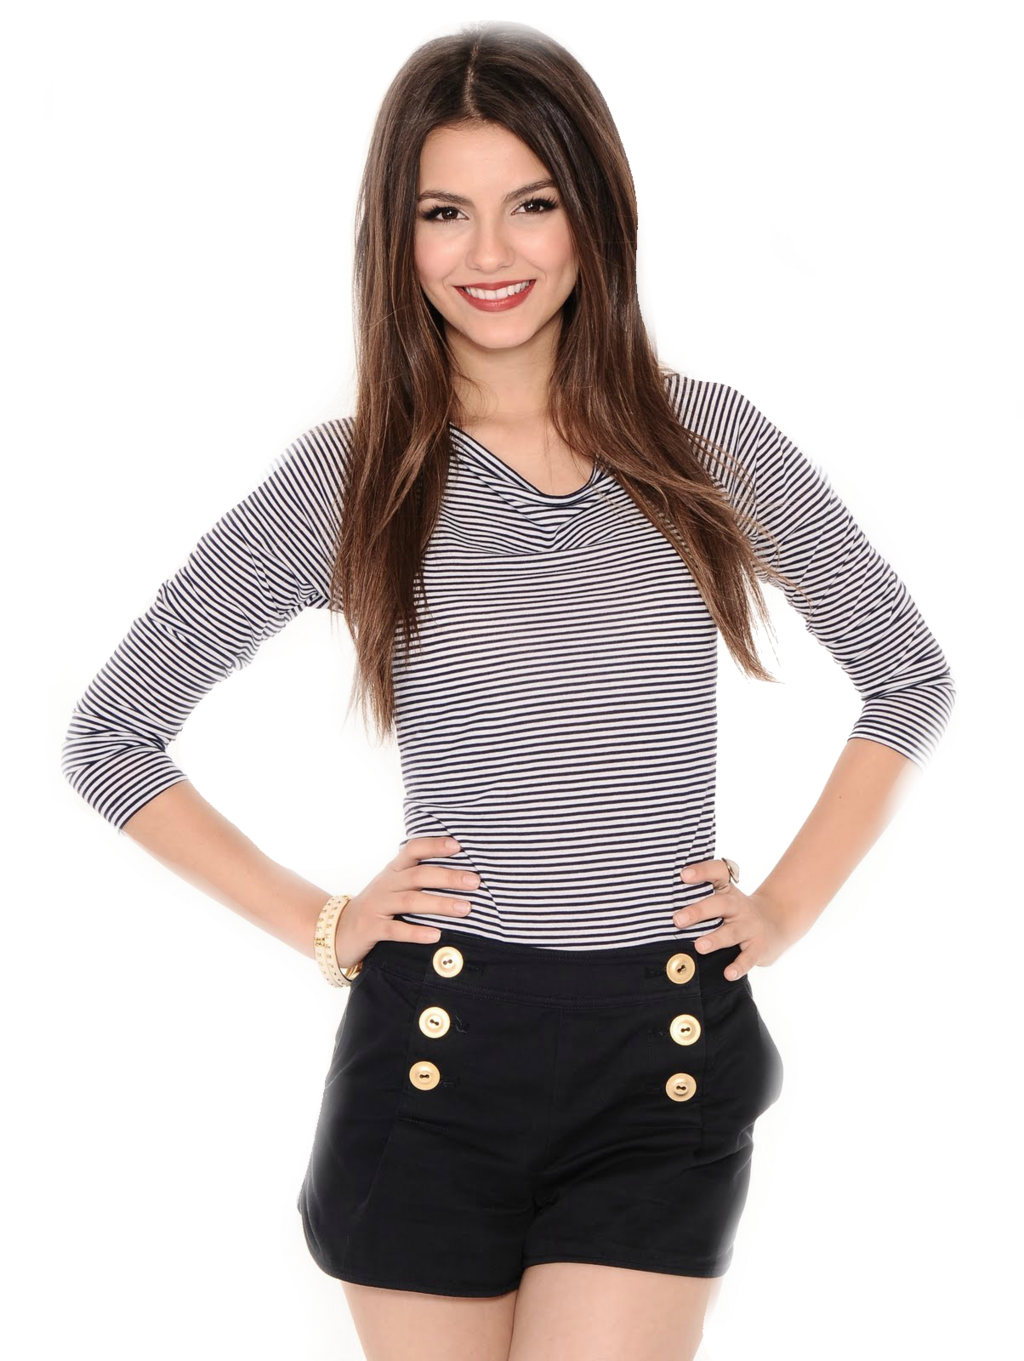 Victoria Justice PNG 2 by GiselaEditions Victoria Justice PNG 2 by  GiselaEditions - Victoria Justice PNG